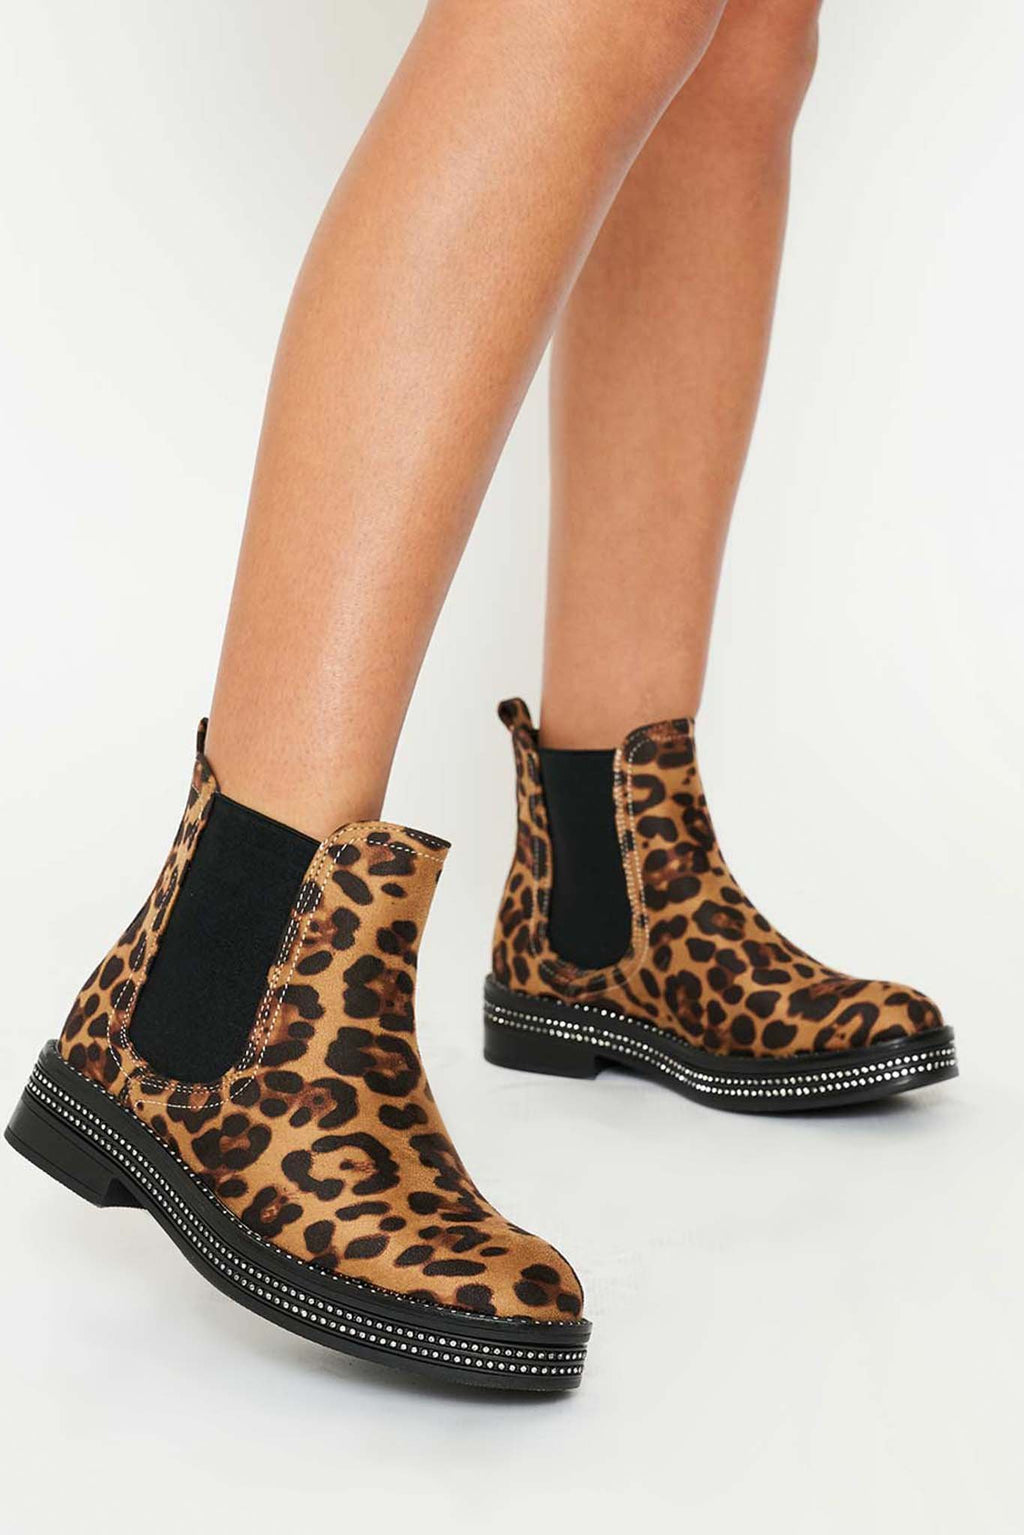 Aina Diamante Studded Ankle Boots in